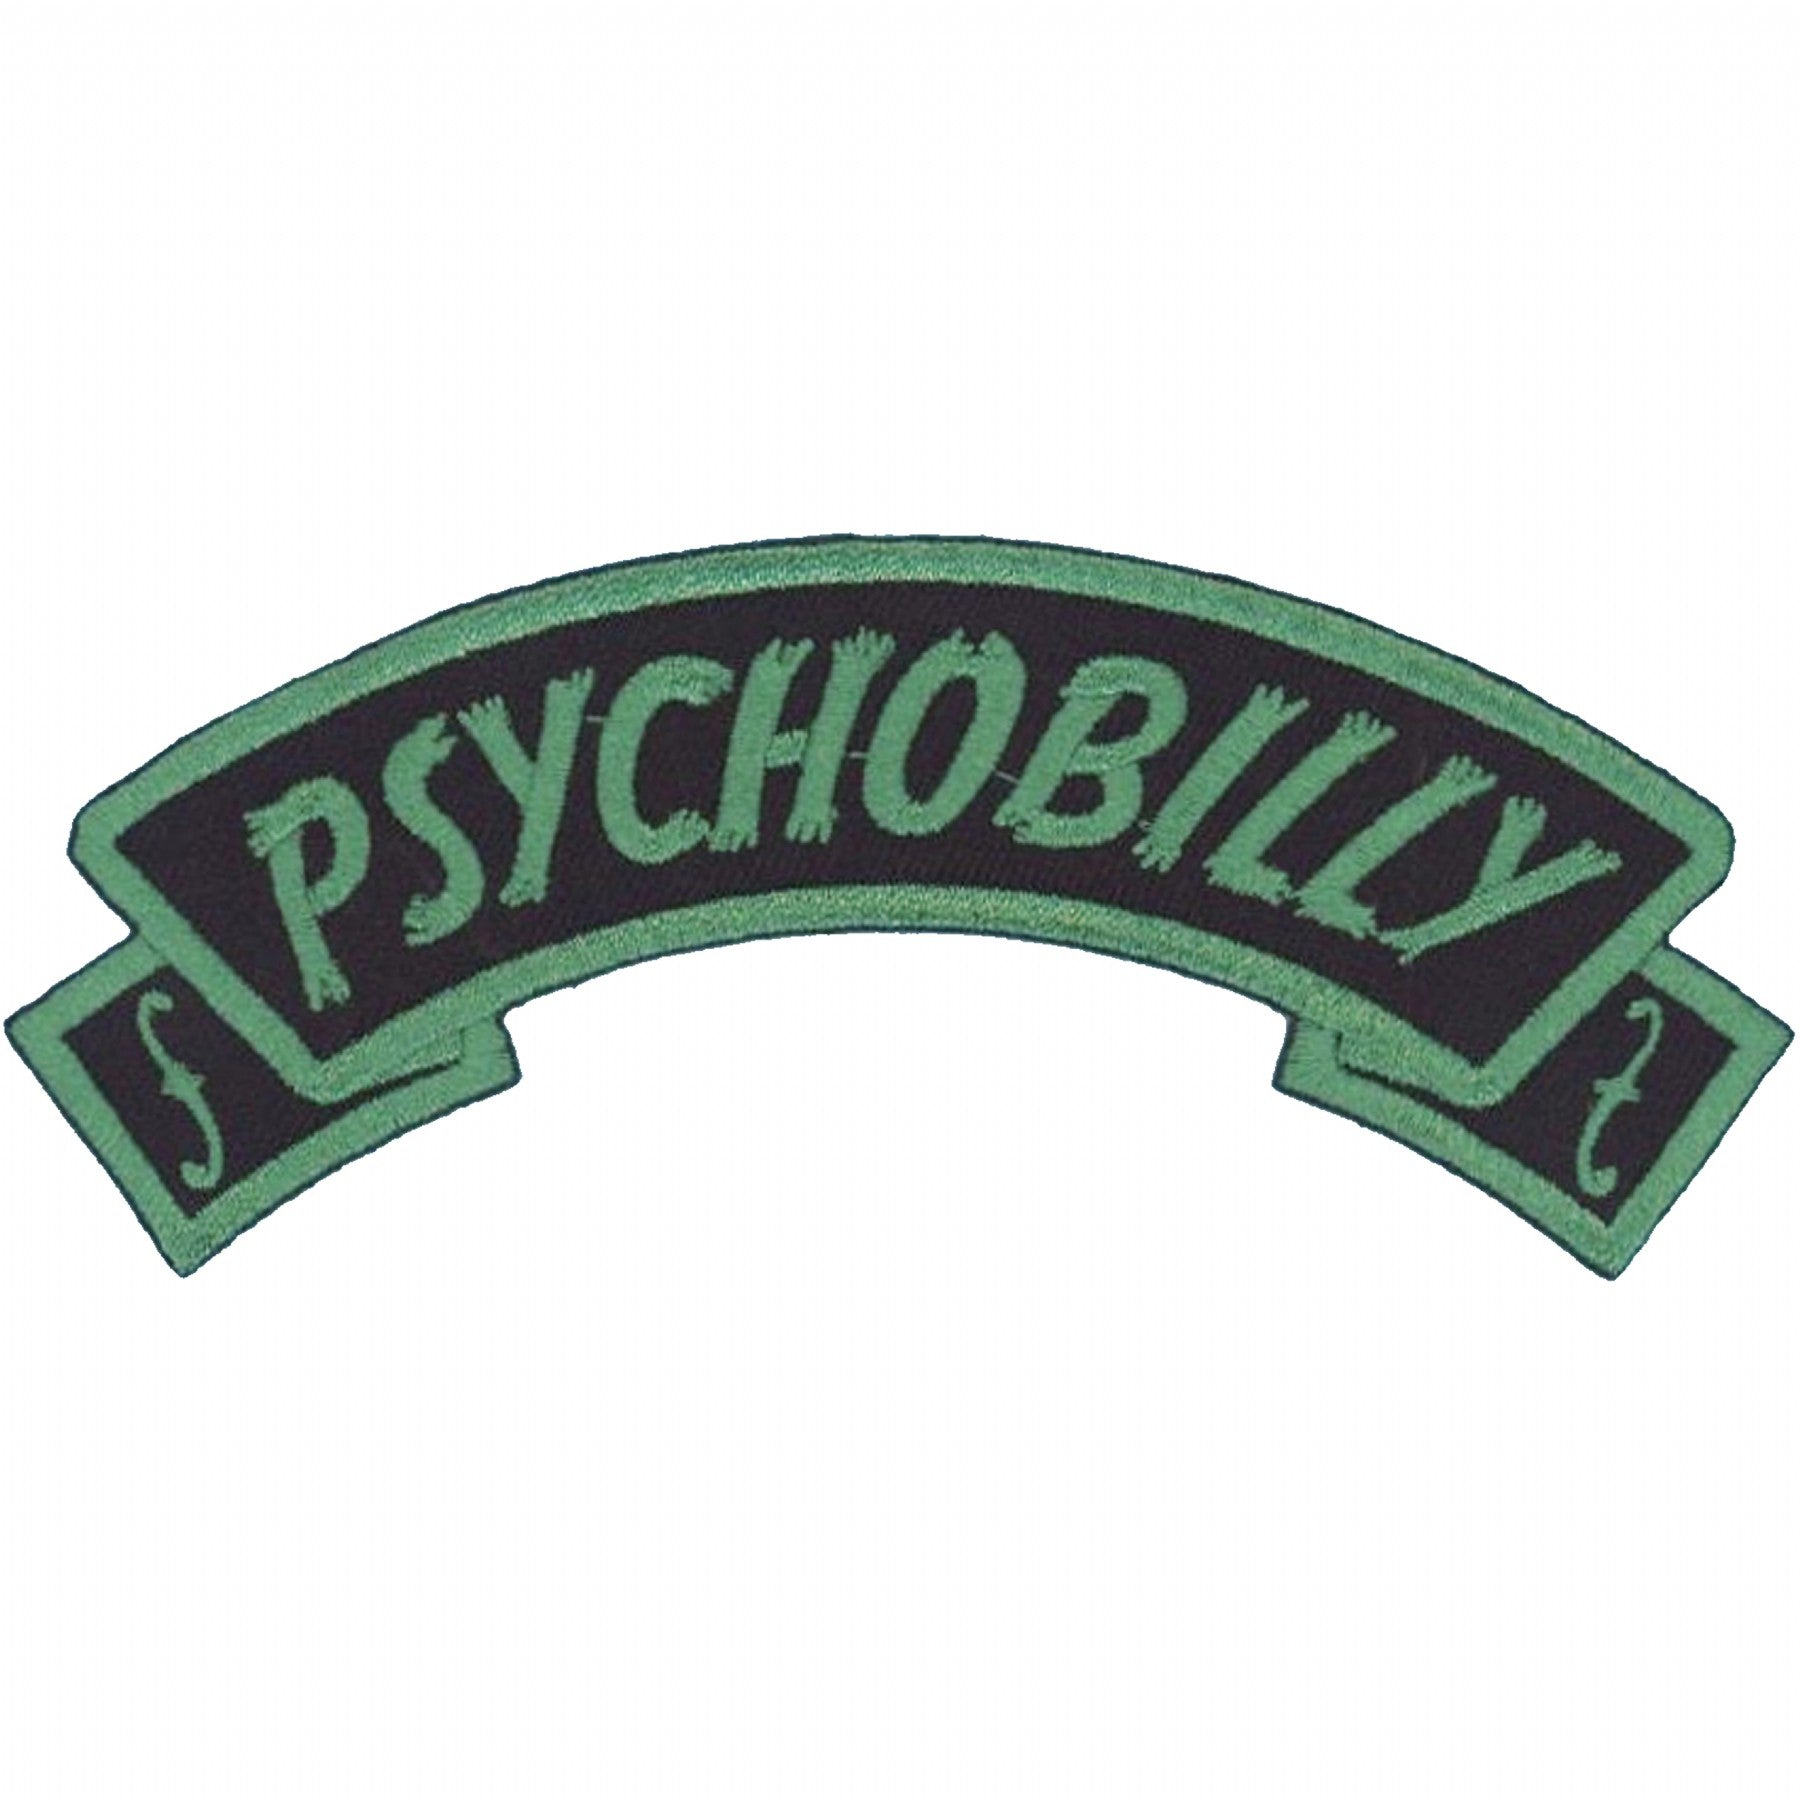 Arch Psychobilly Patch